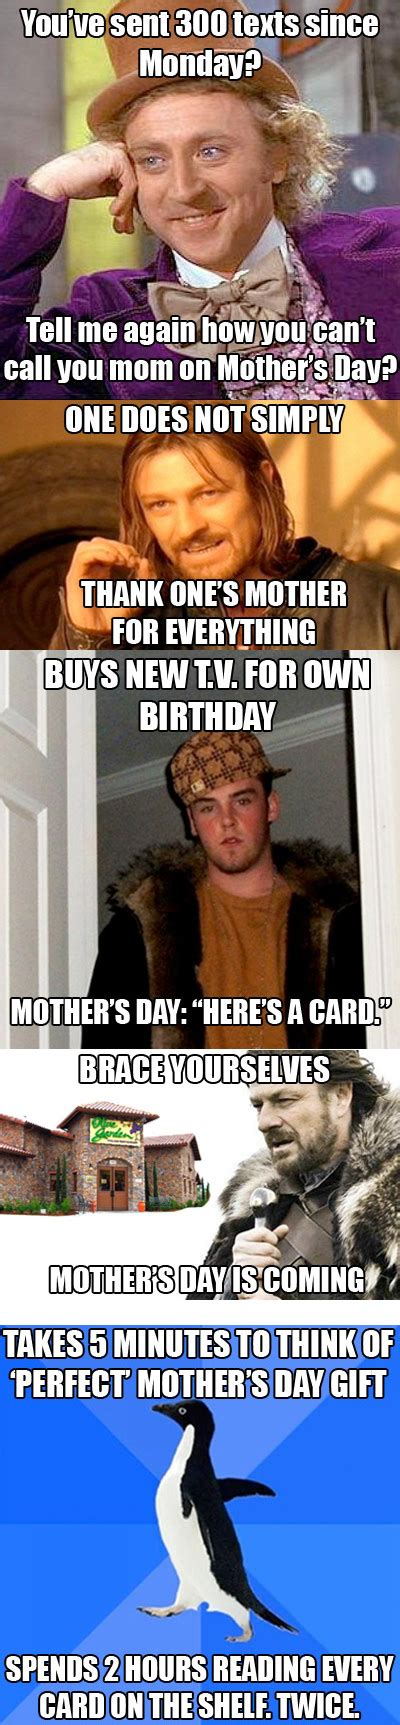 Mothersday Meme - memes inspired by mother s day